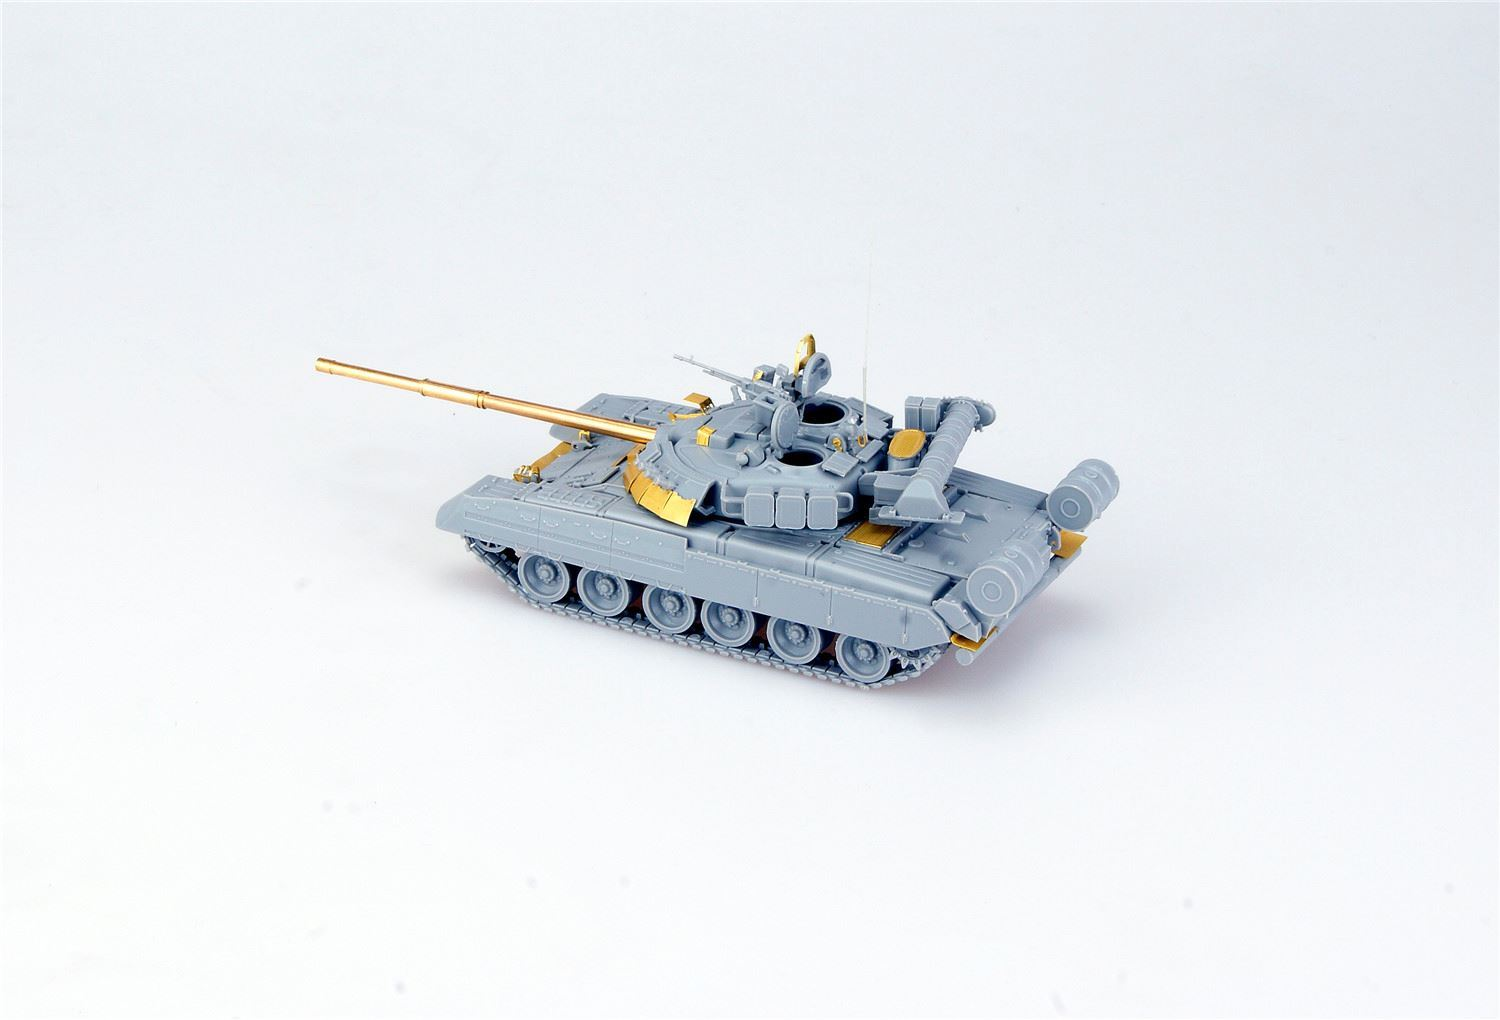 0001980_t-80u-main-battle-tank.jpeg